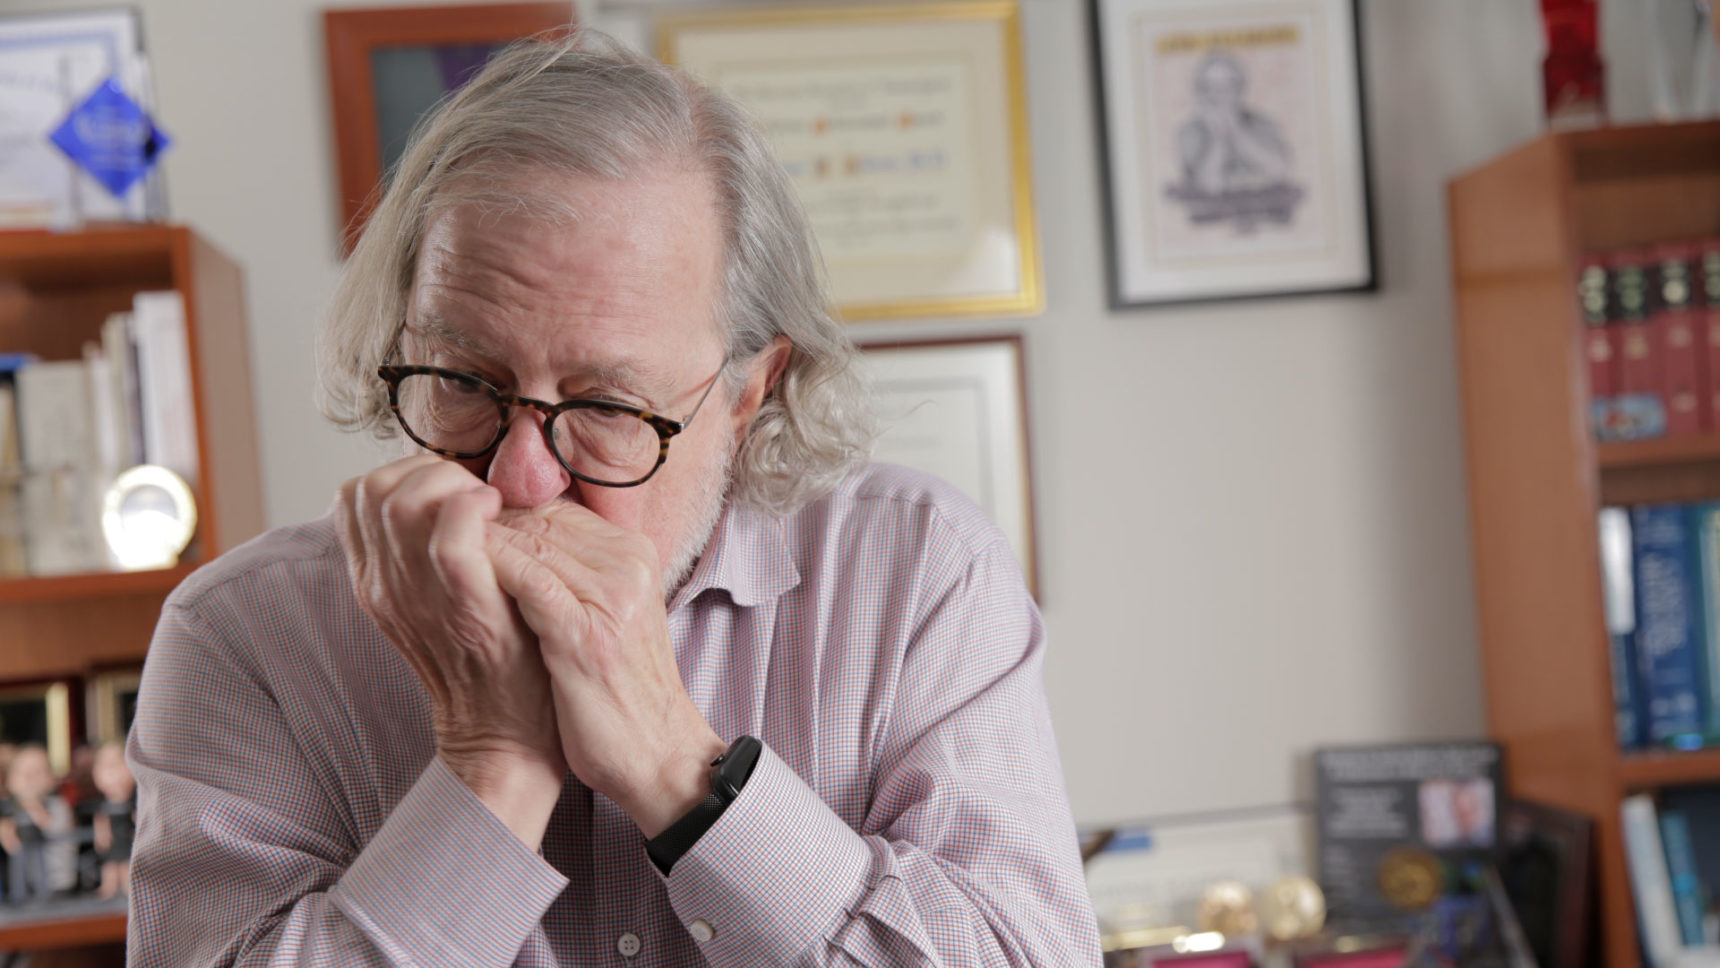 James P. Allison of the University of Texas MD Anderson Cancer Center discusses what initially drew him to immunology as a field and why many scientists used to be skeptical that an immunological strategy for killing cancers would work.